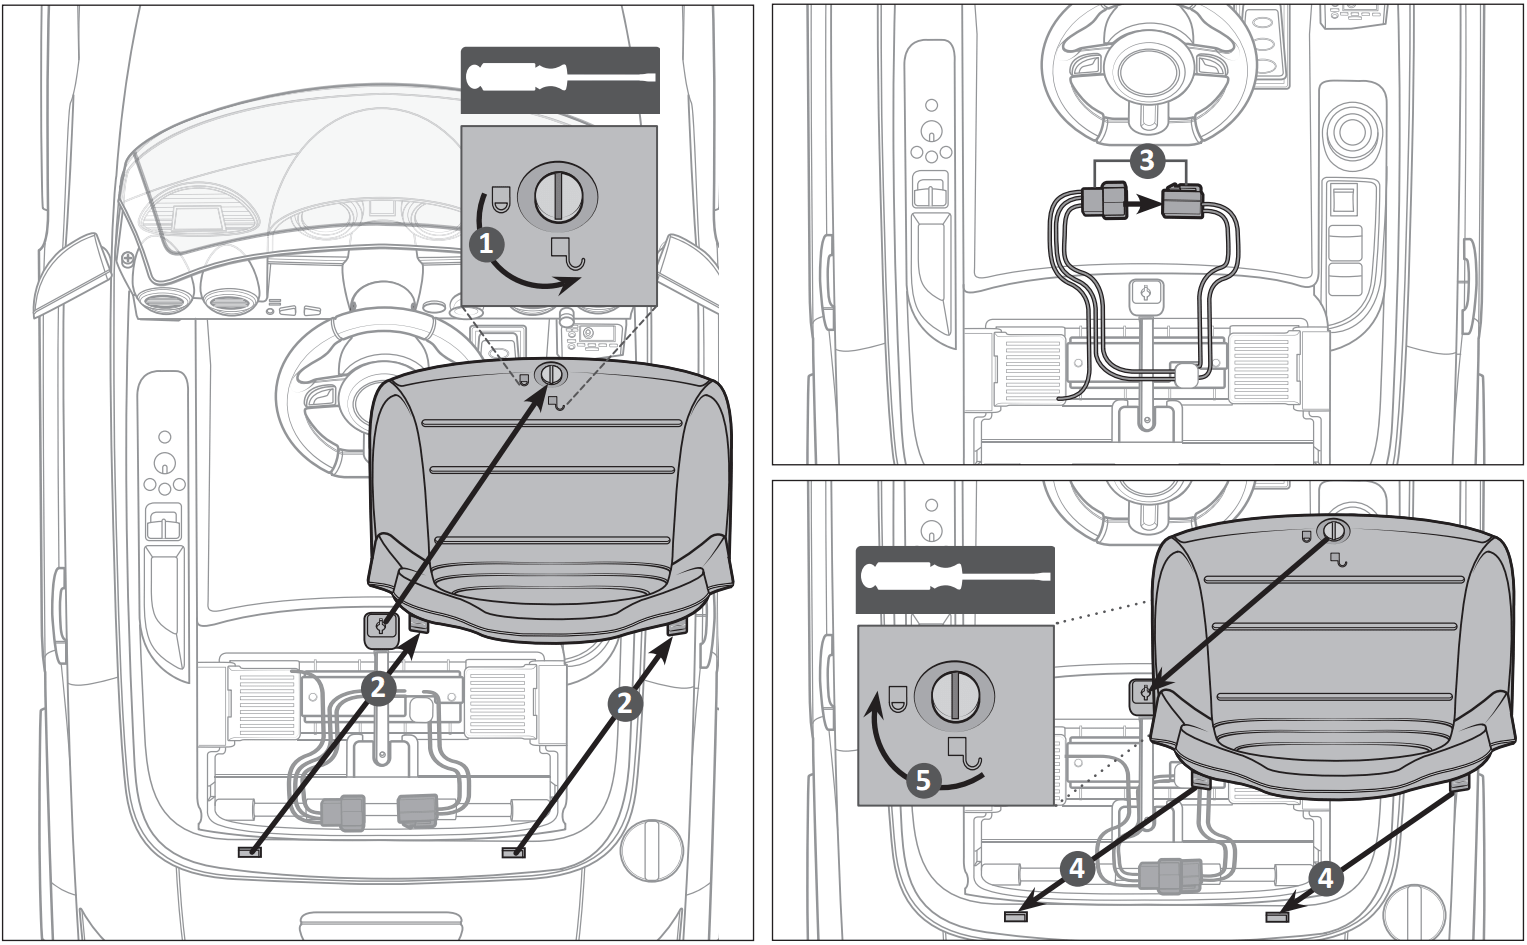 audi tt ride on car seat assembly illustration